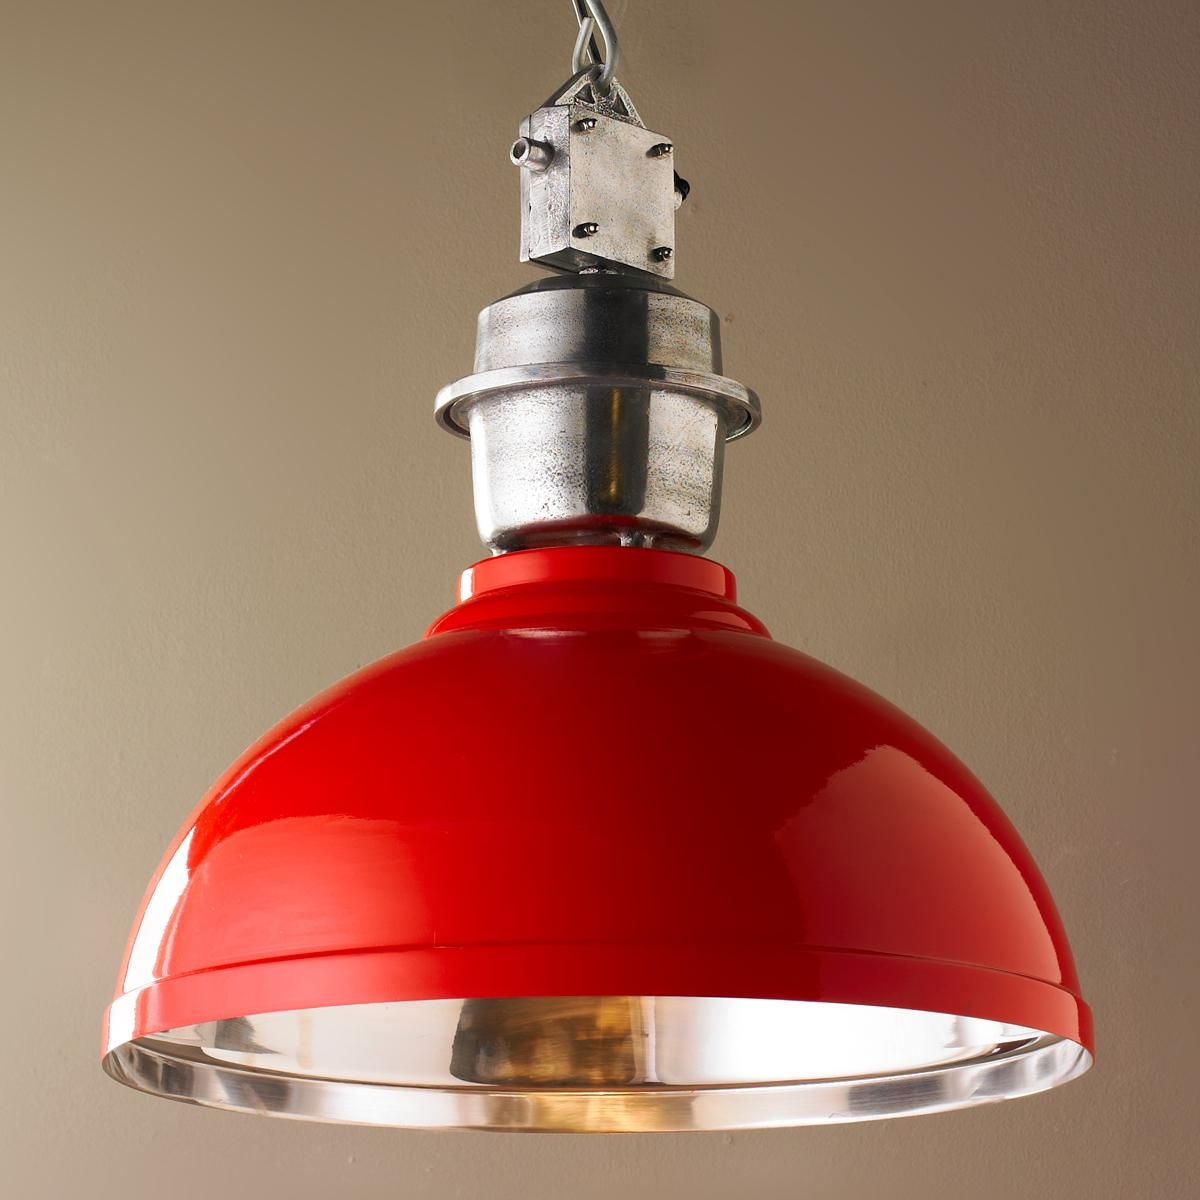 Classic Dome Shade Pendant Light - Large